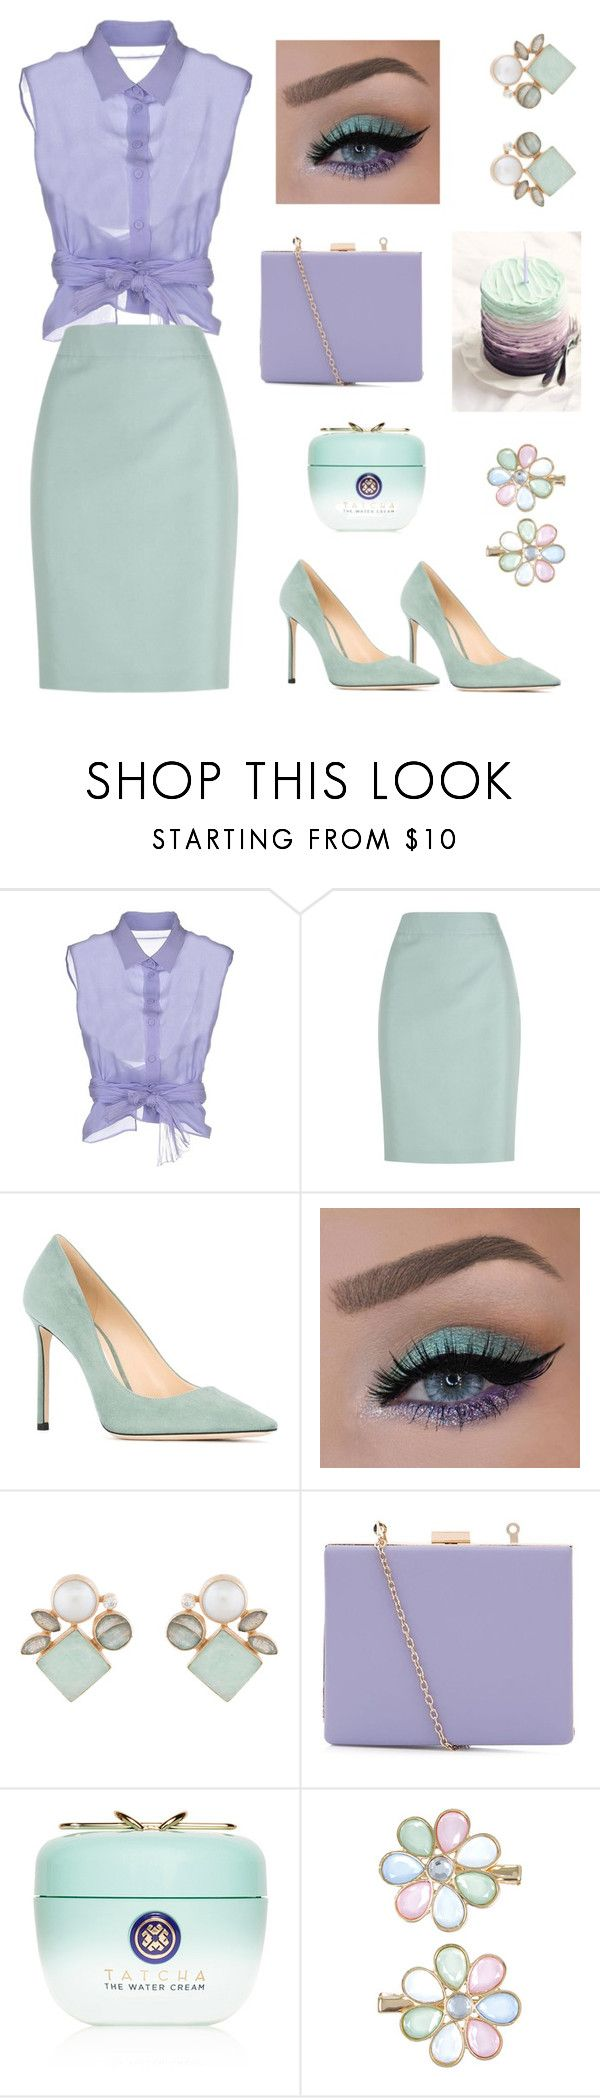 """Untitled 69"" by jaelclarice ❤ liked on Polyvore featuring Alberta Ferretti, Armani Collezioni, Jimmy Choo, Atelier Mon, Tatcha and Monsoon"